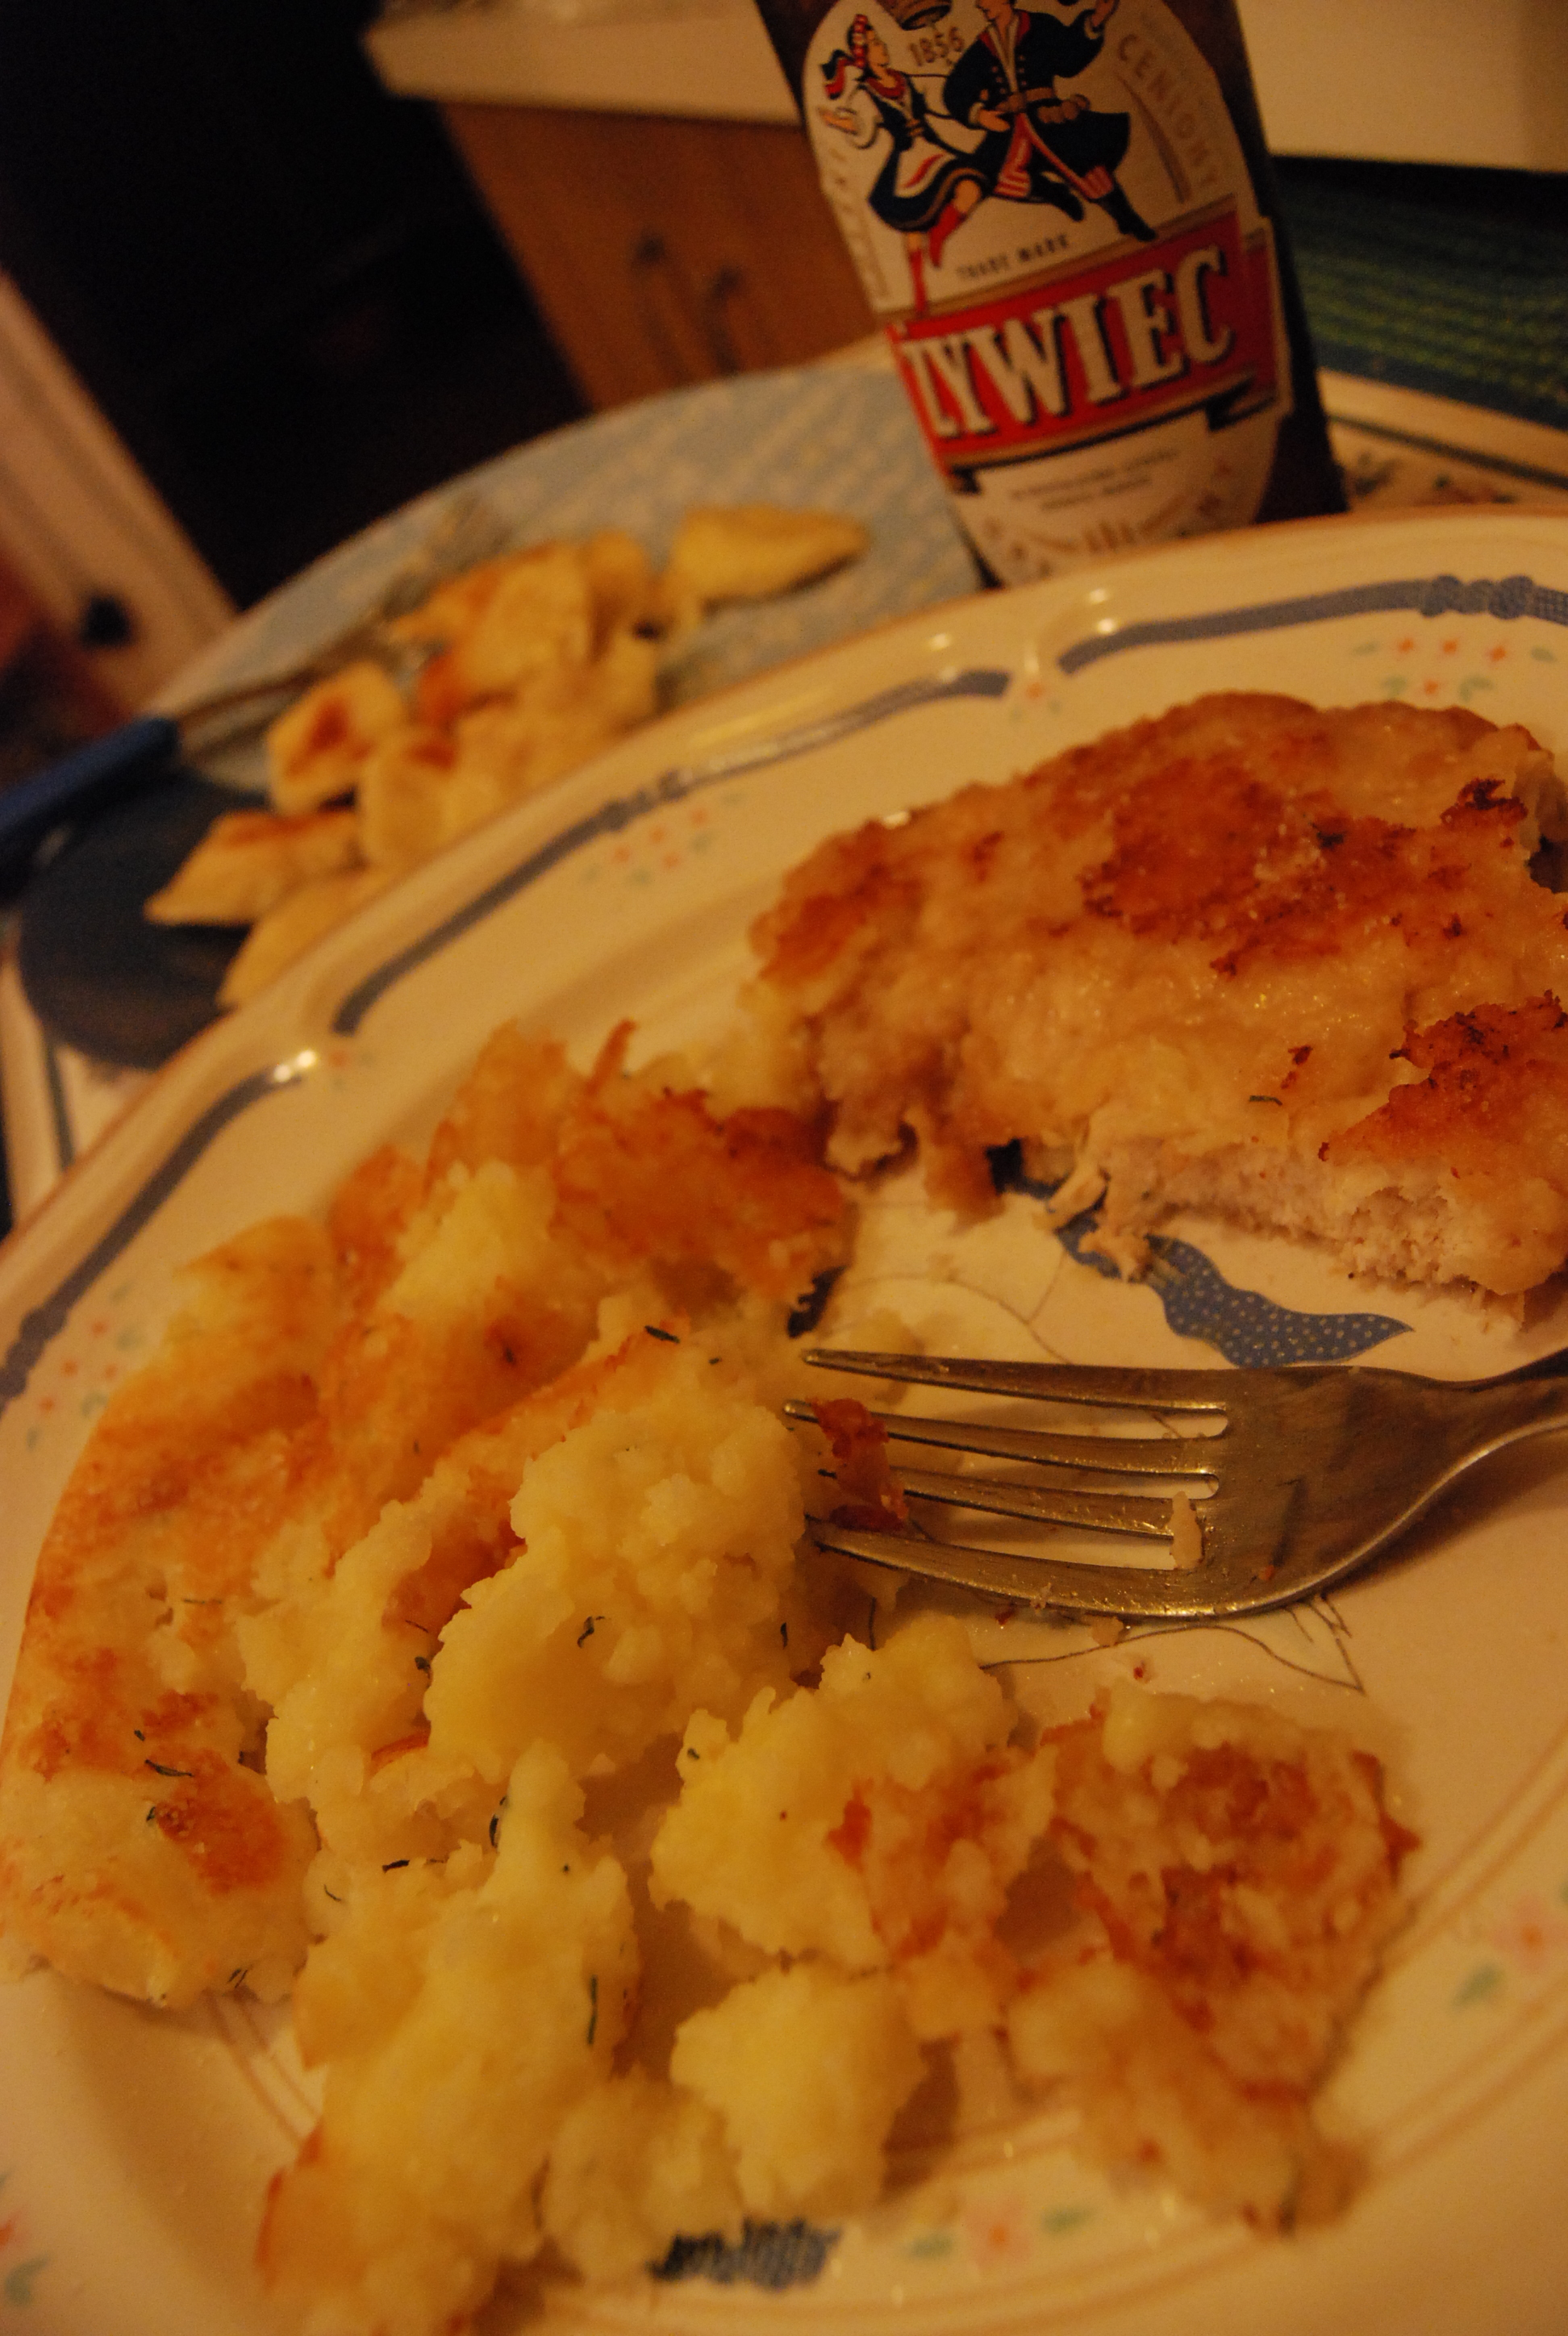 schabowy (pork chops) and potatoes... famous Polsih combination